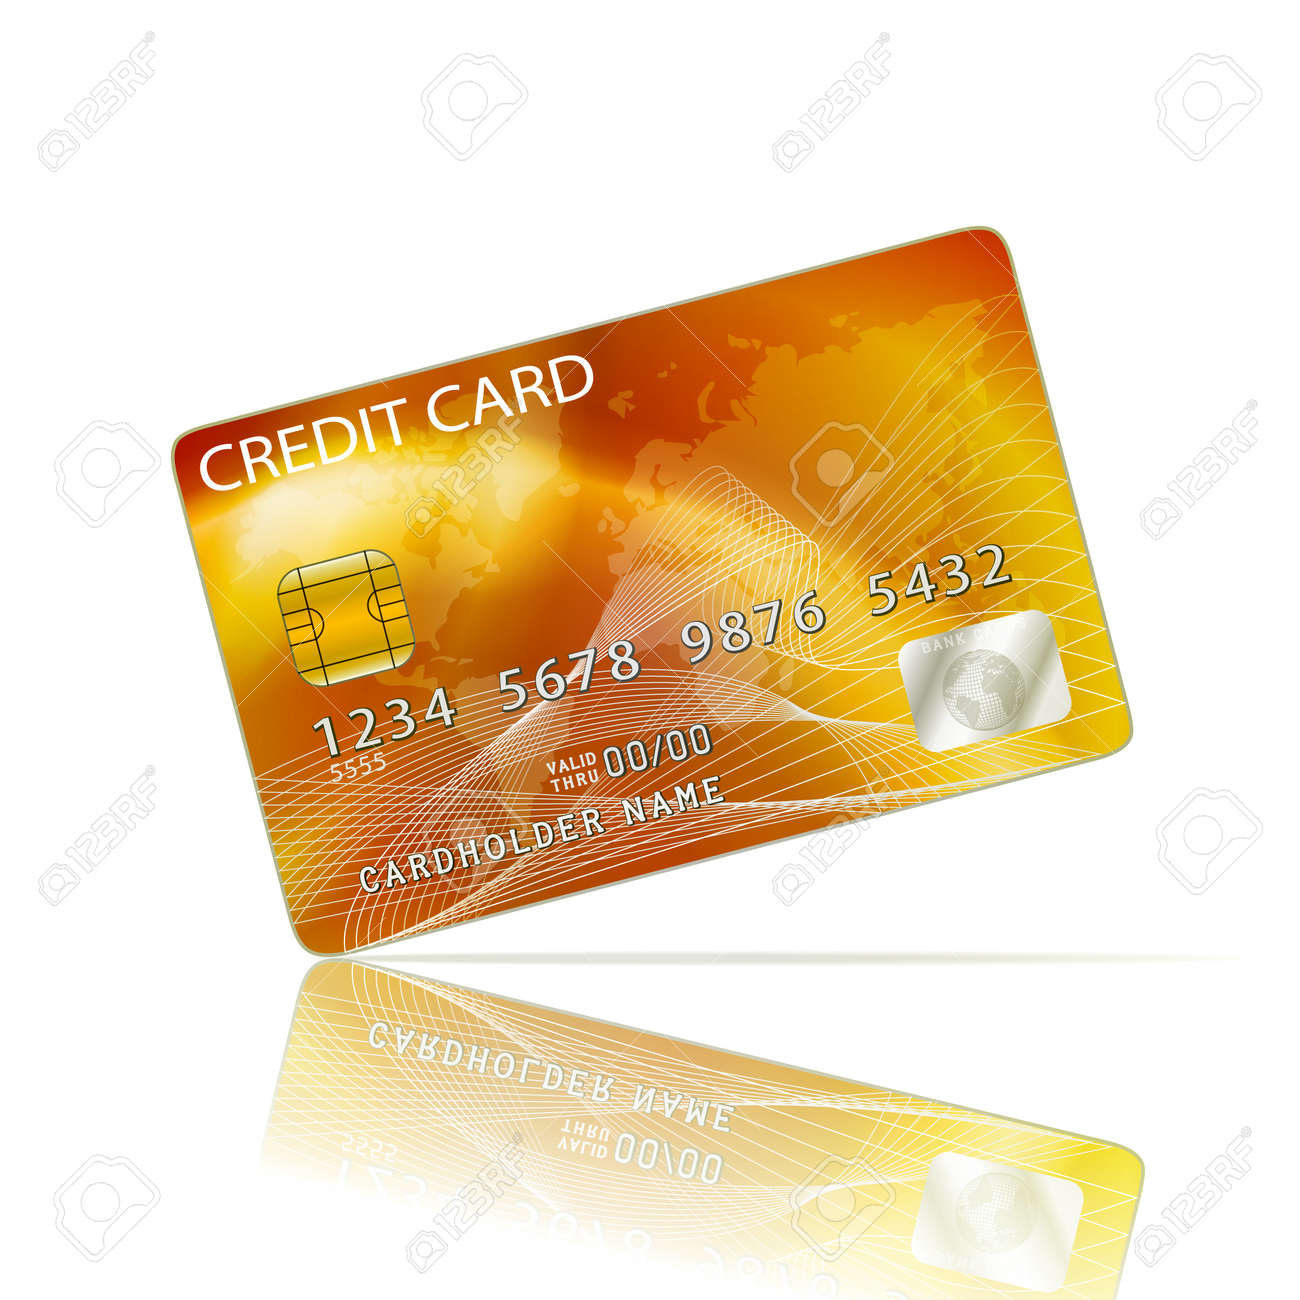 Credit Card Icon Isolated on White Stock Vector - 25213684